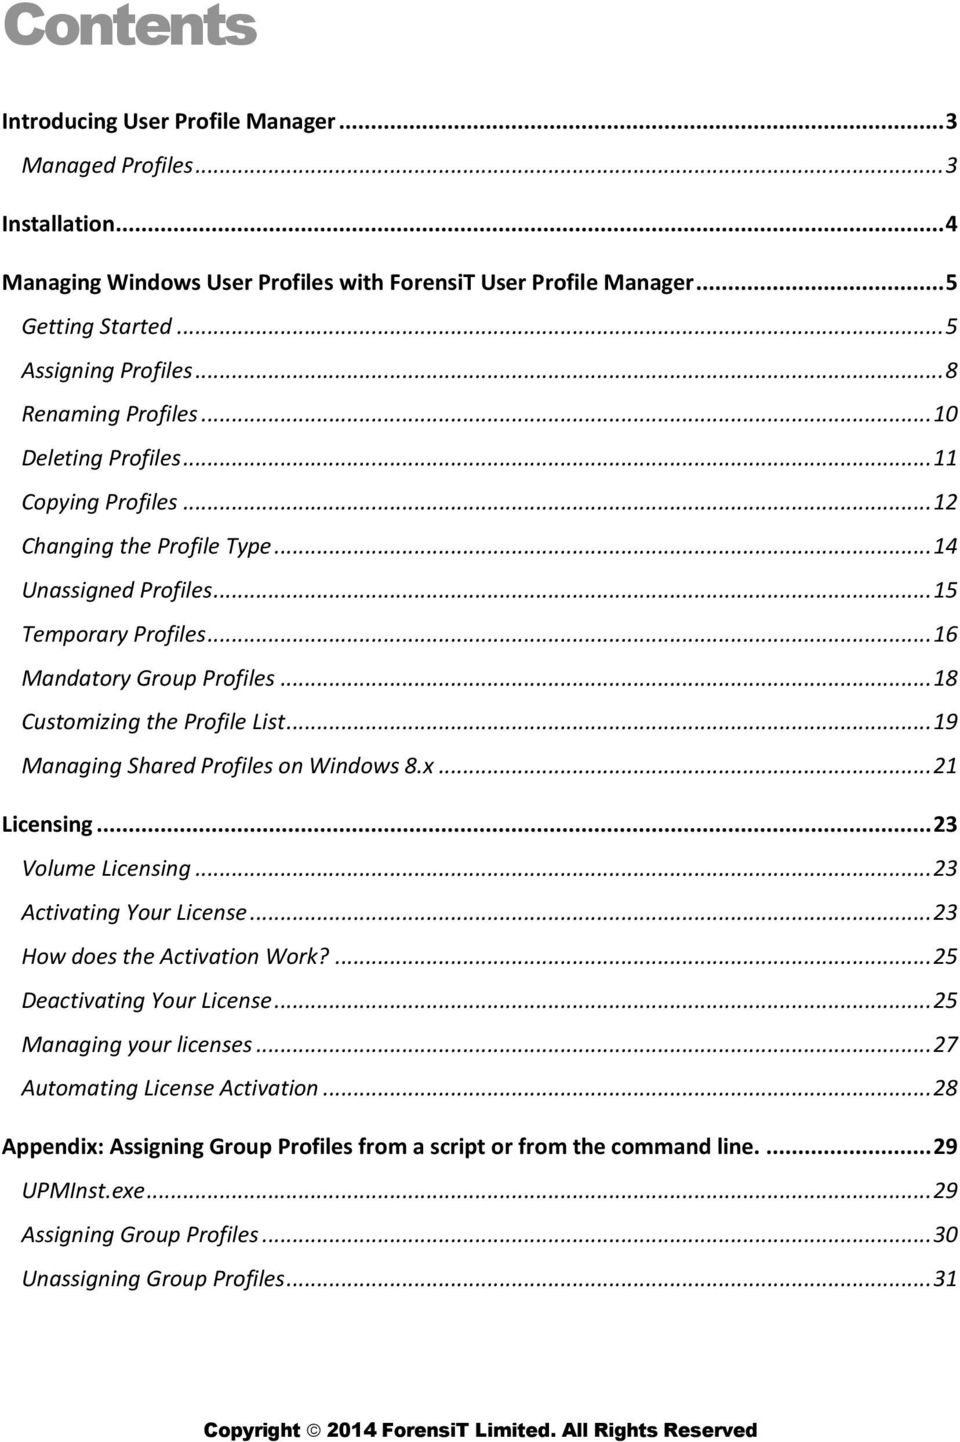 User Profile Manager PDF